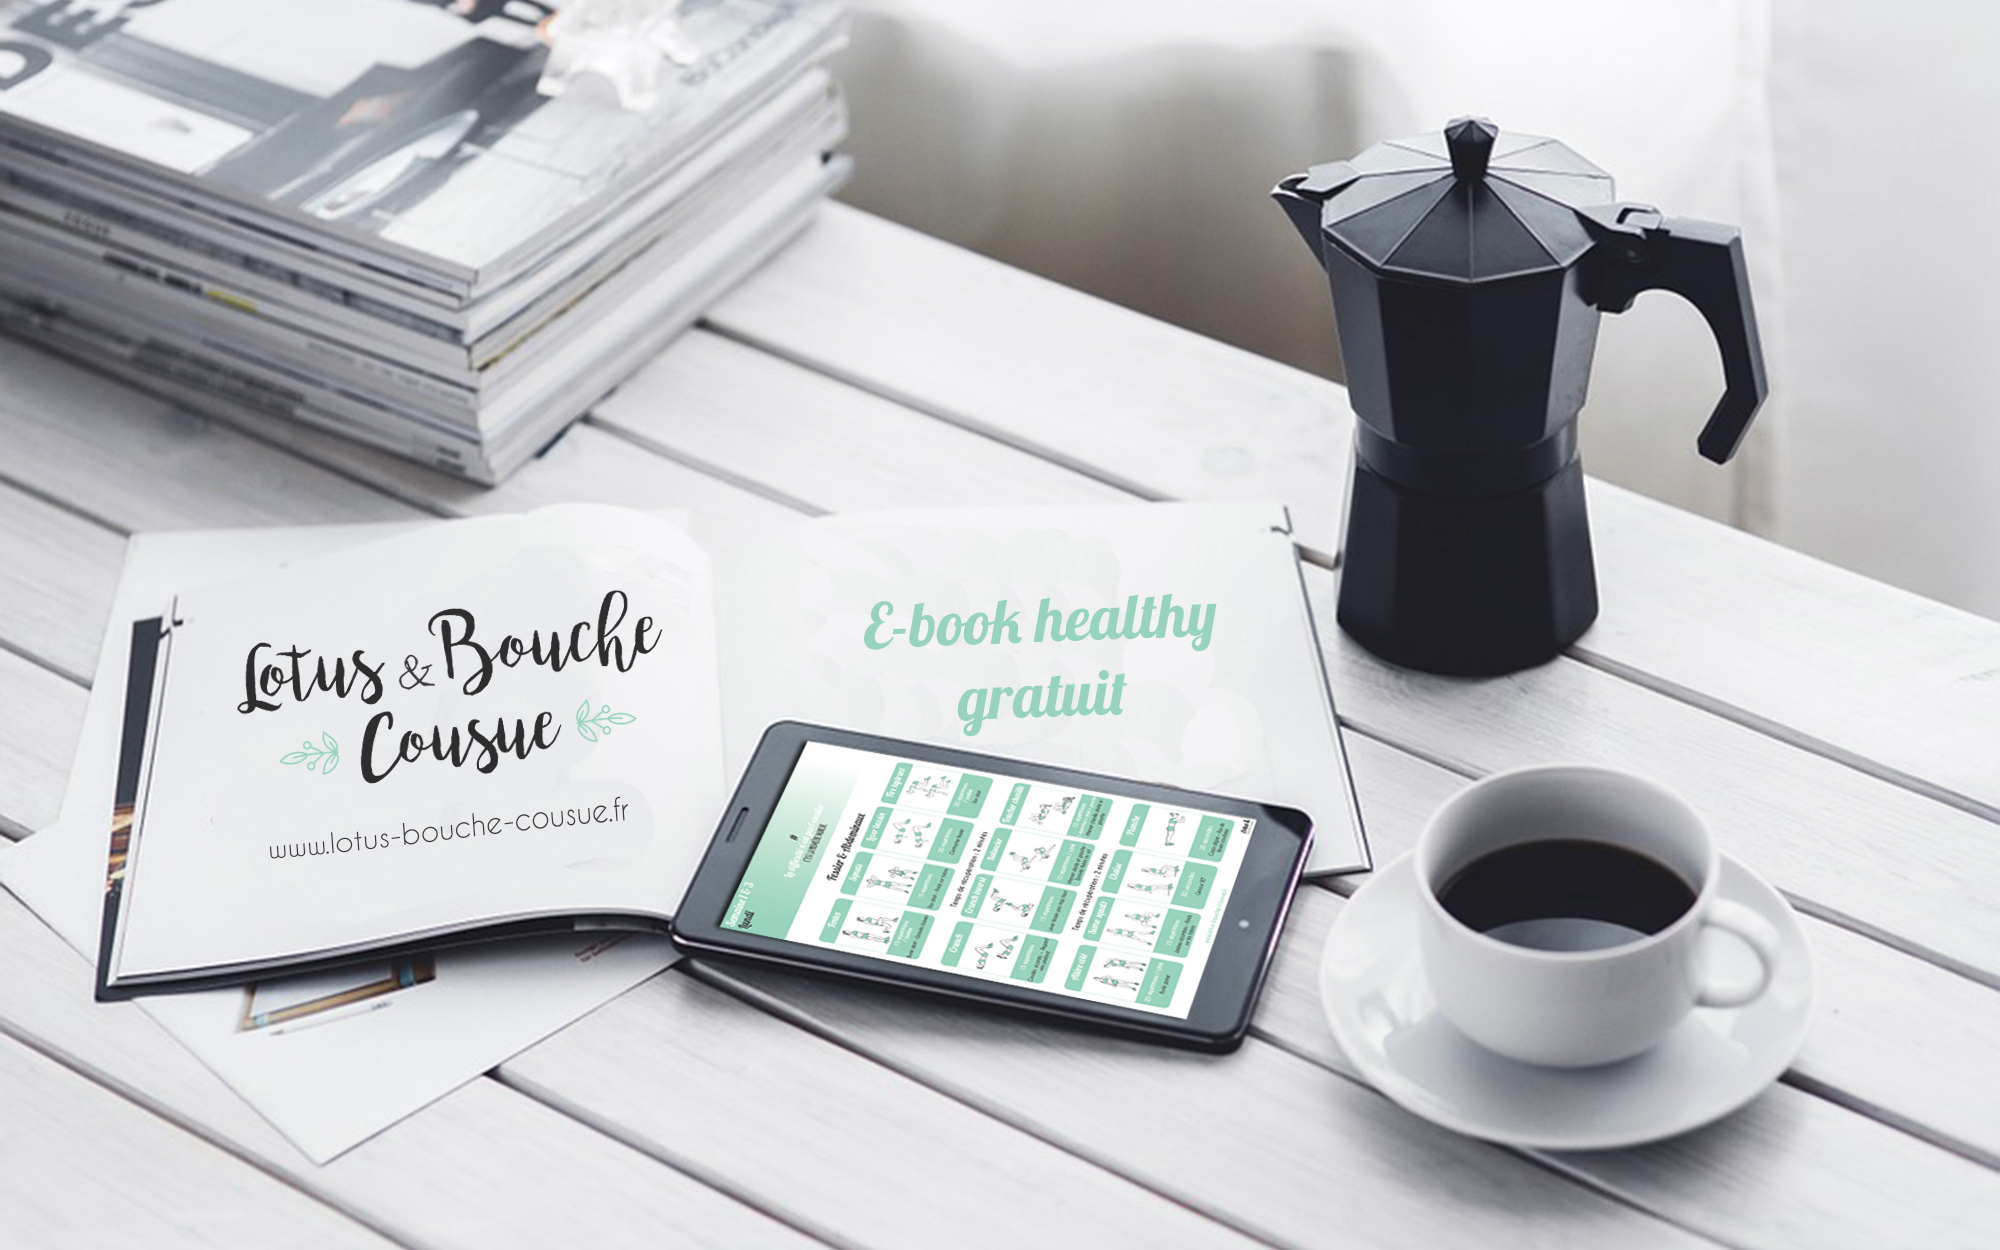 E-BOOK HEALTHY GRATUIT